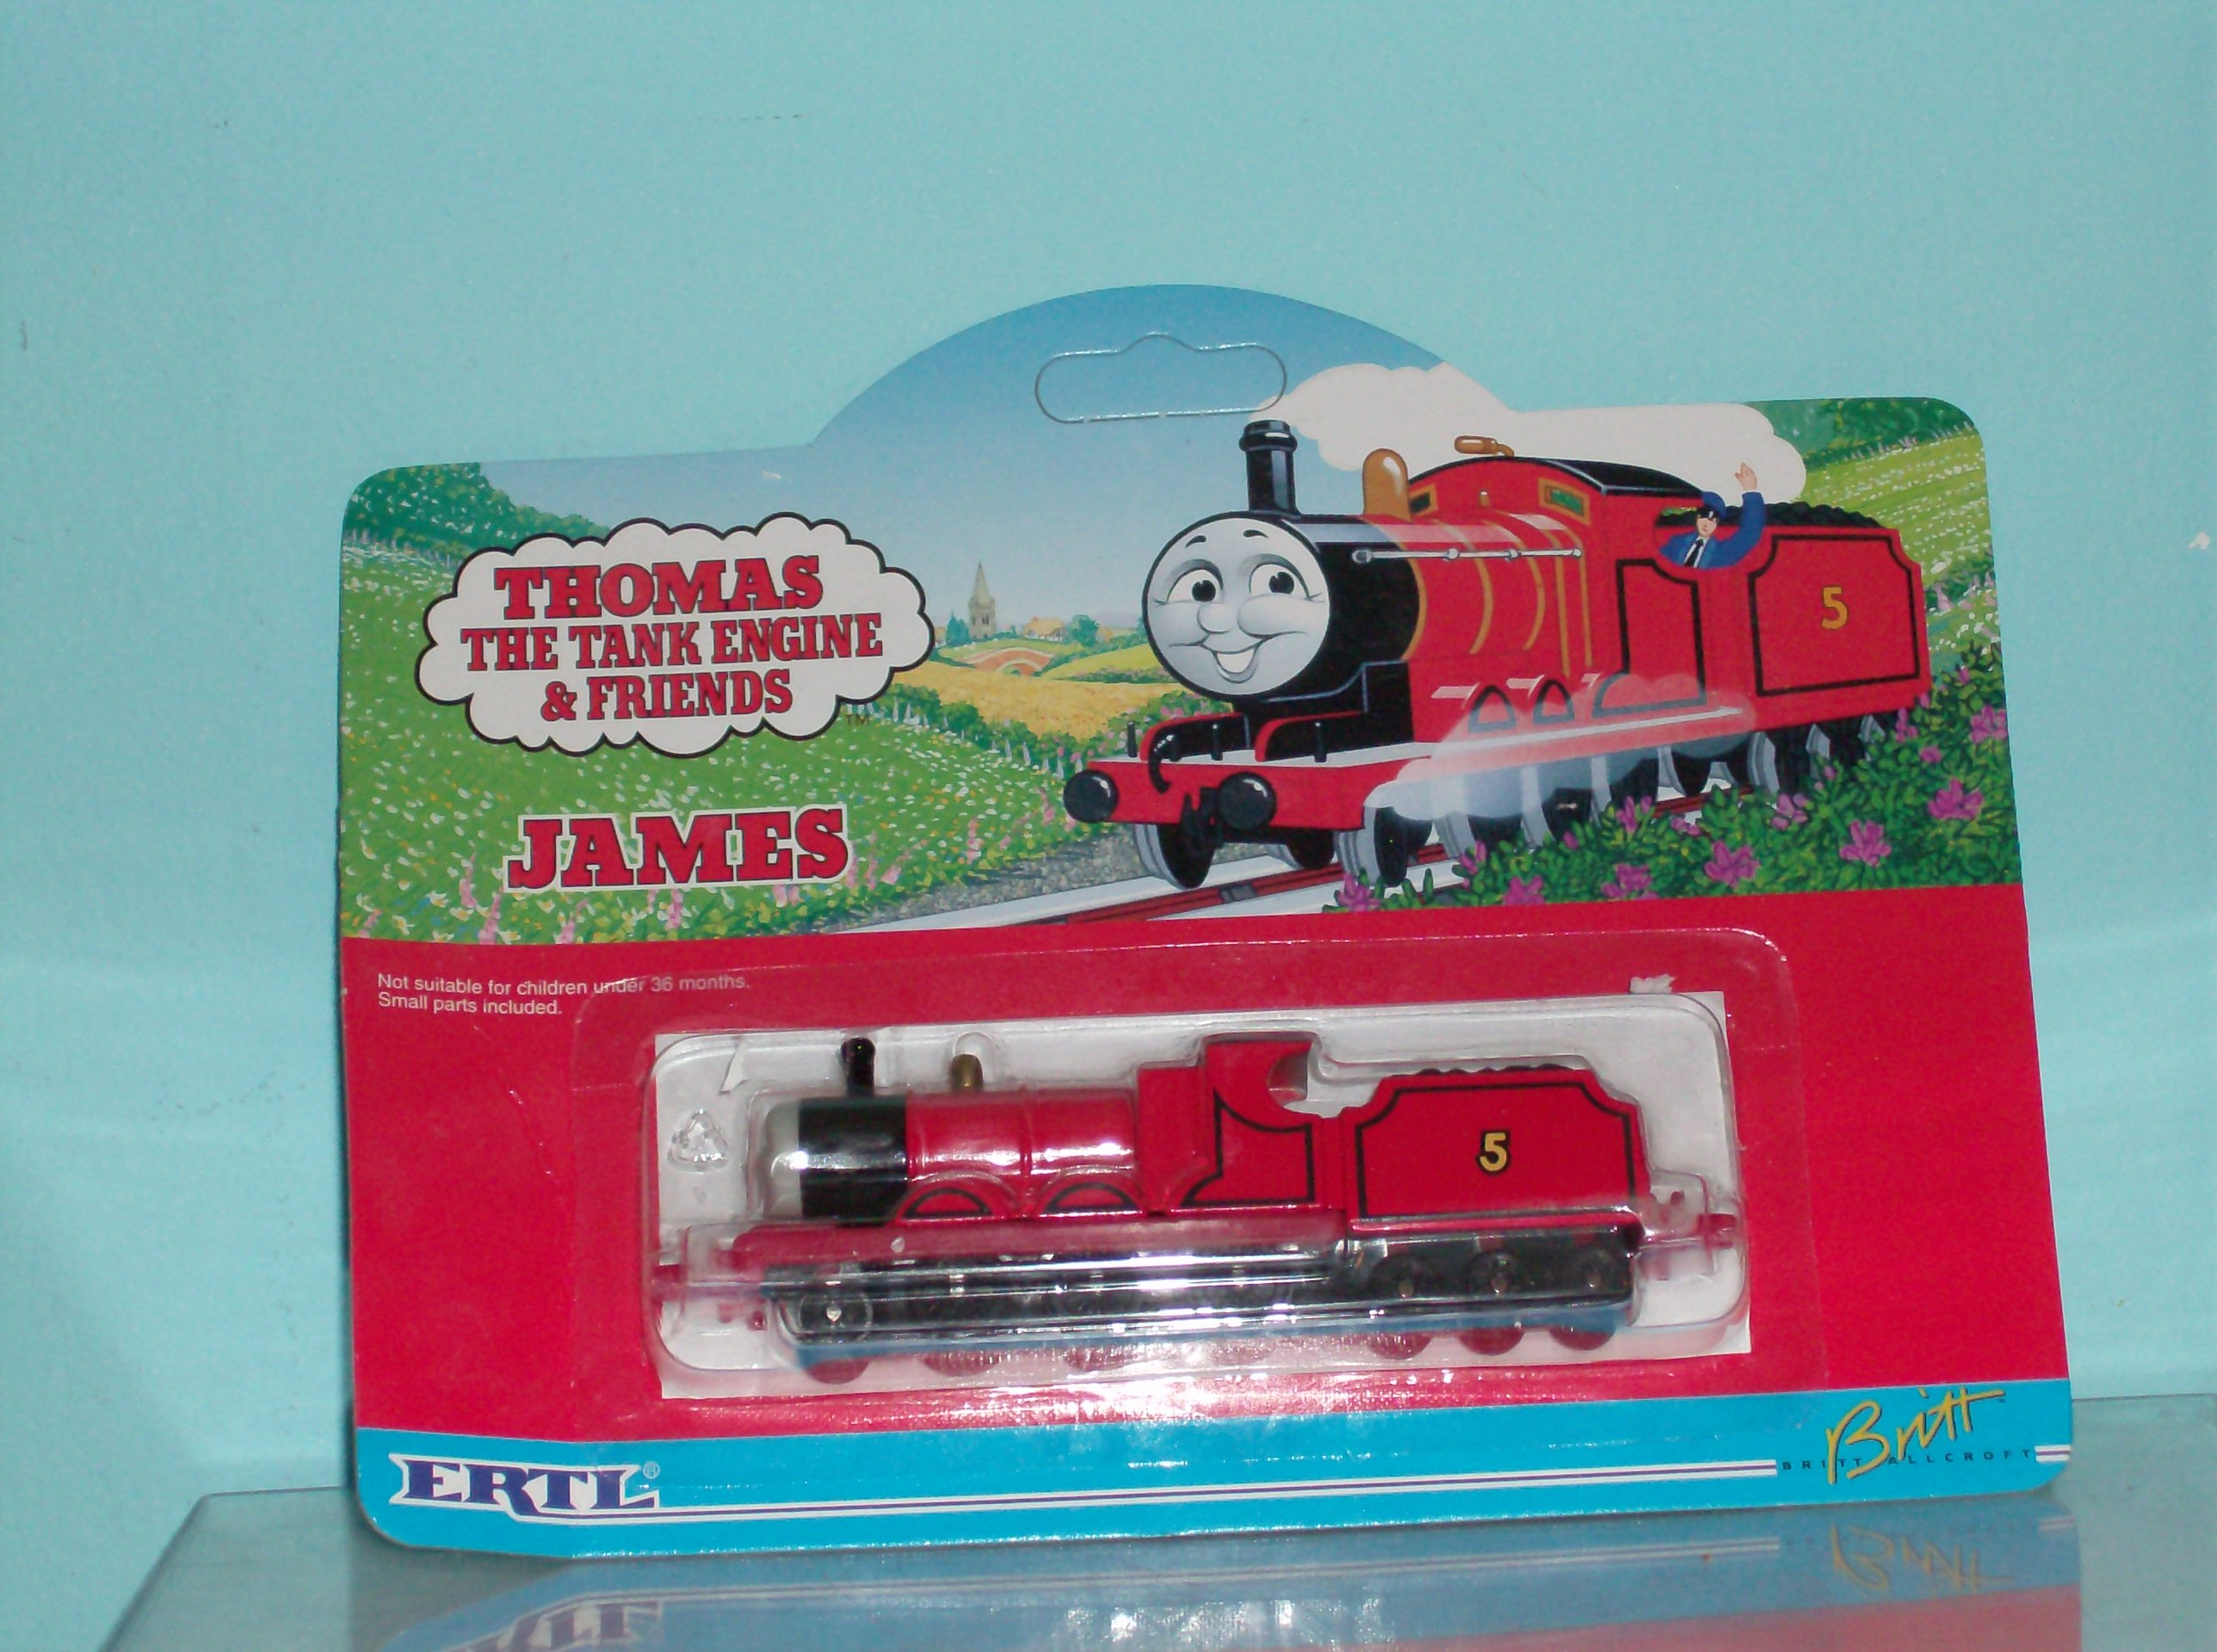 Related Keywords Suggestions For Thomas The Tank Engine And Friends James